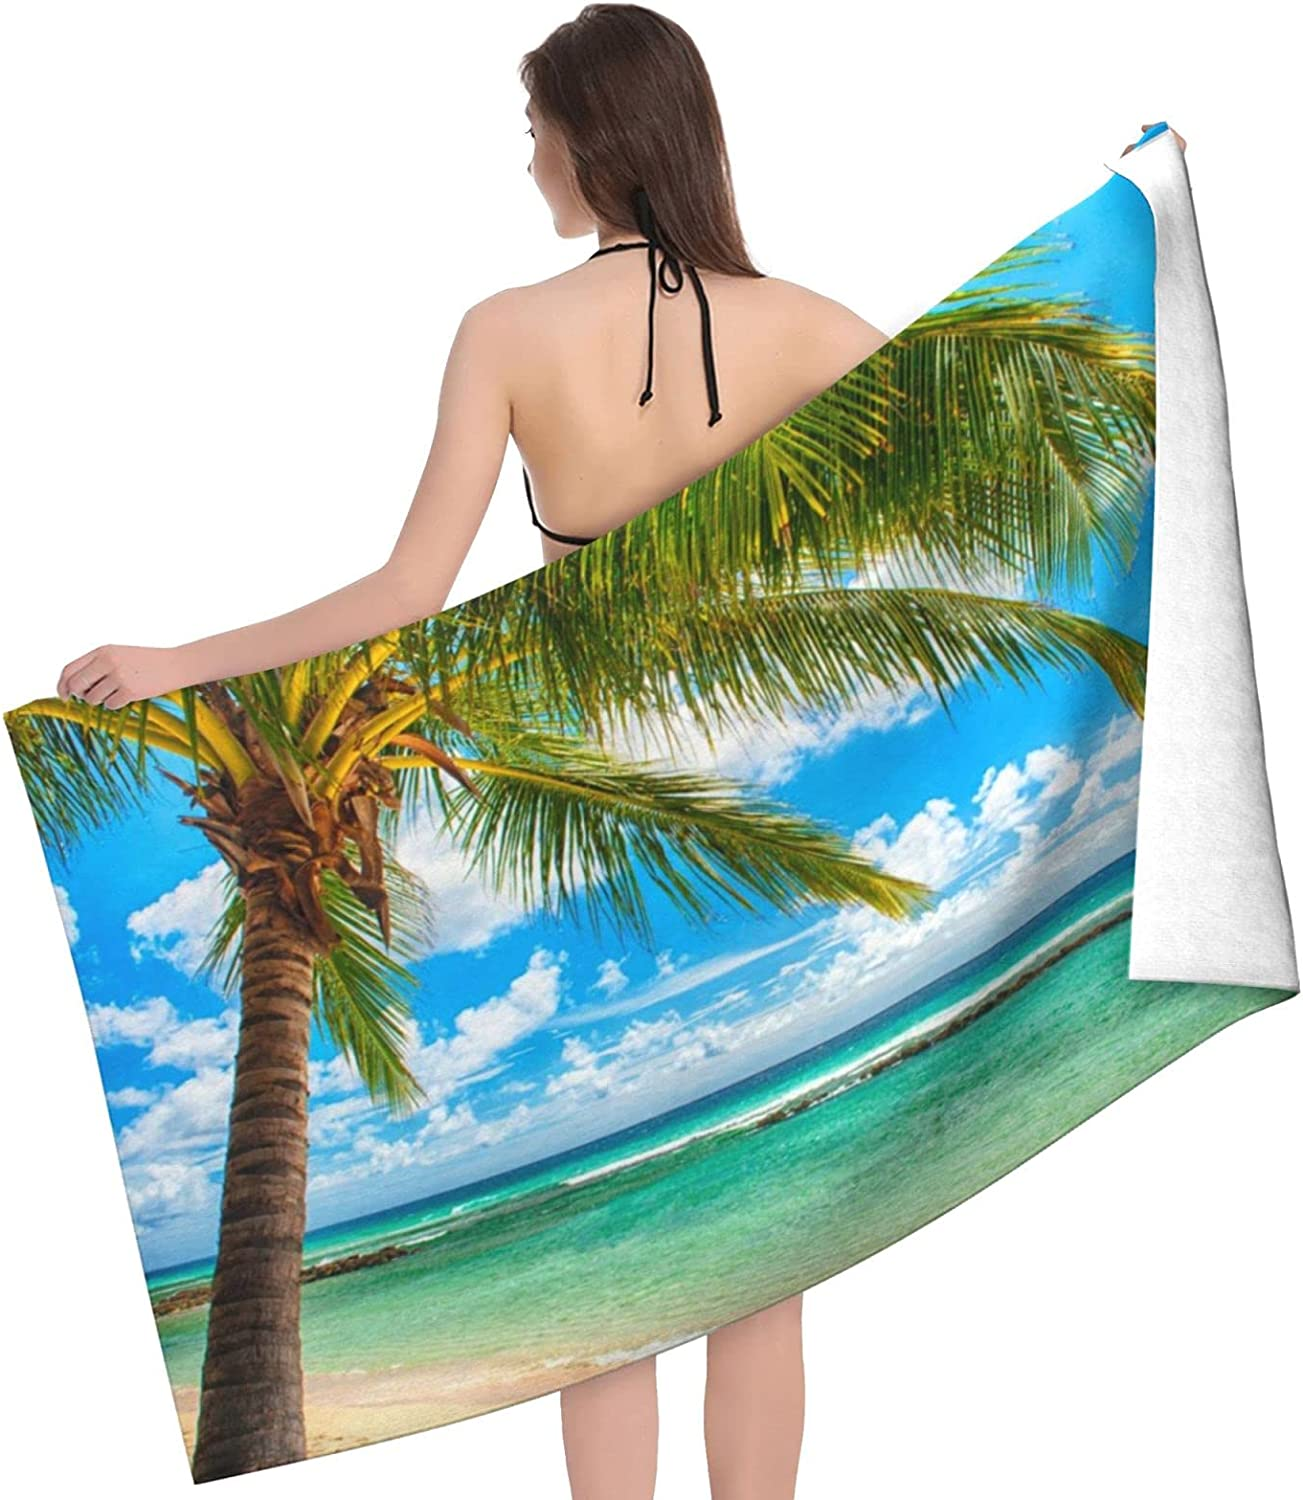 Beach Palm Tree Print Adult Double Colorado Springs Mall - Si Towels Choice Towel